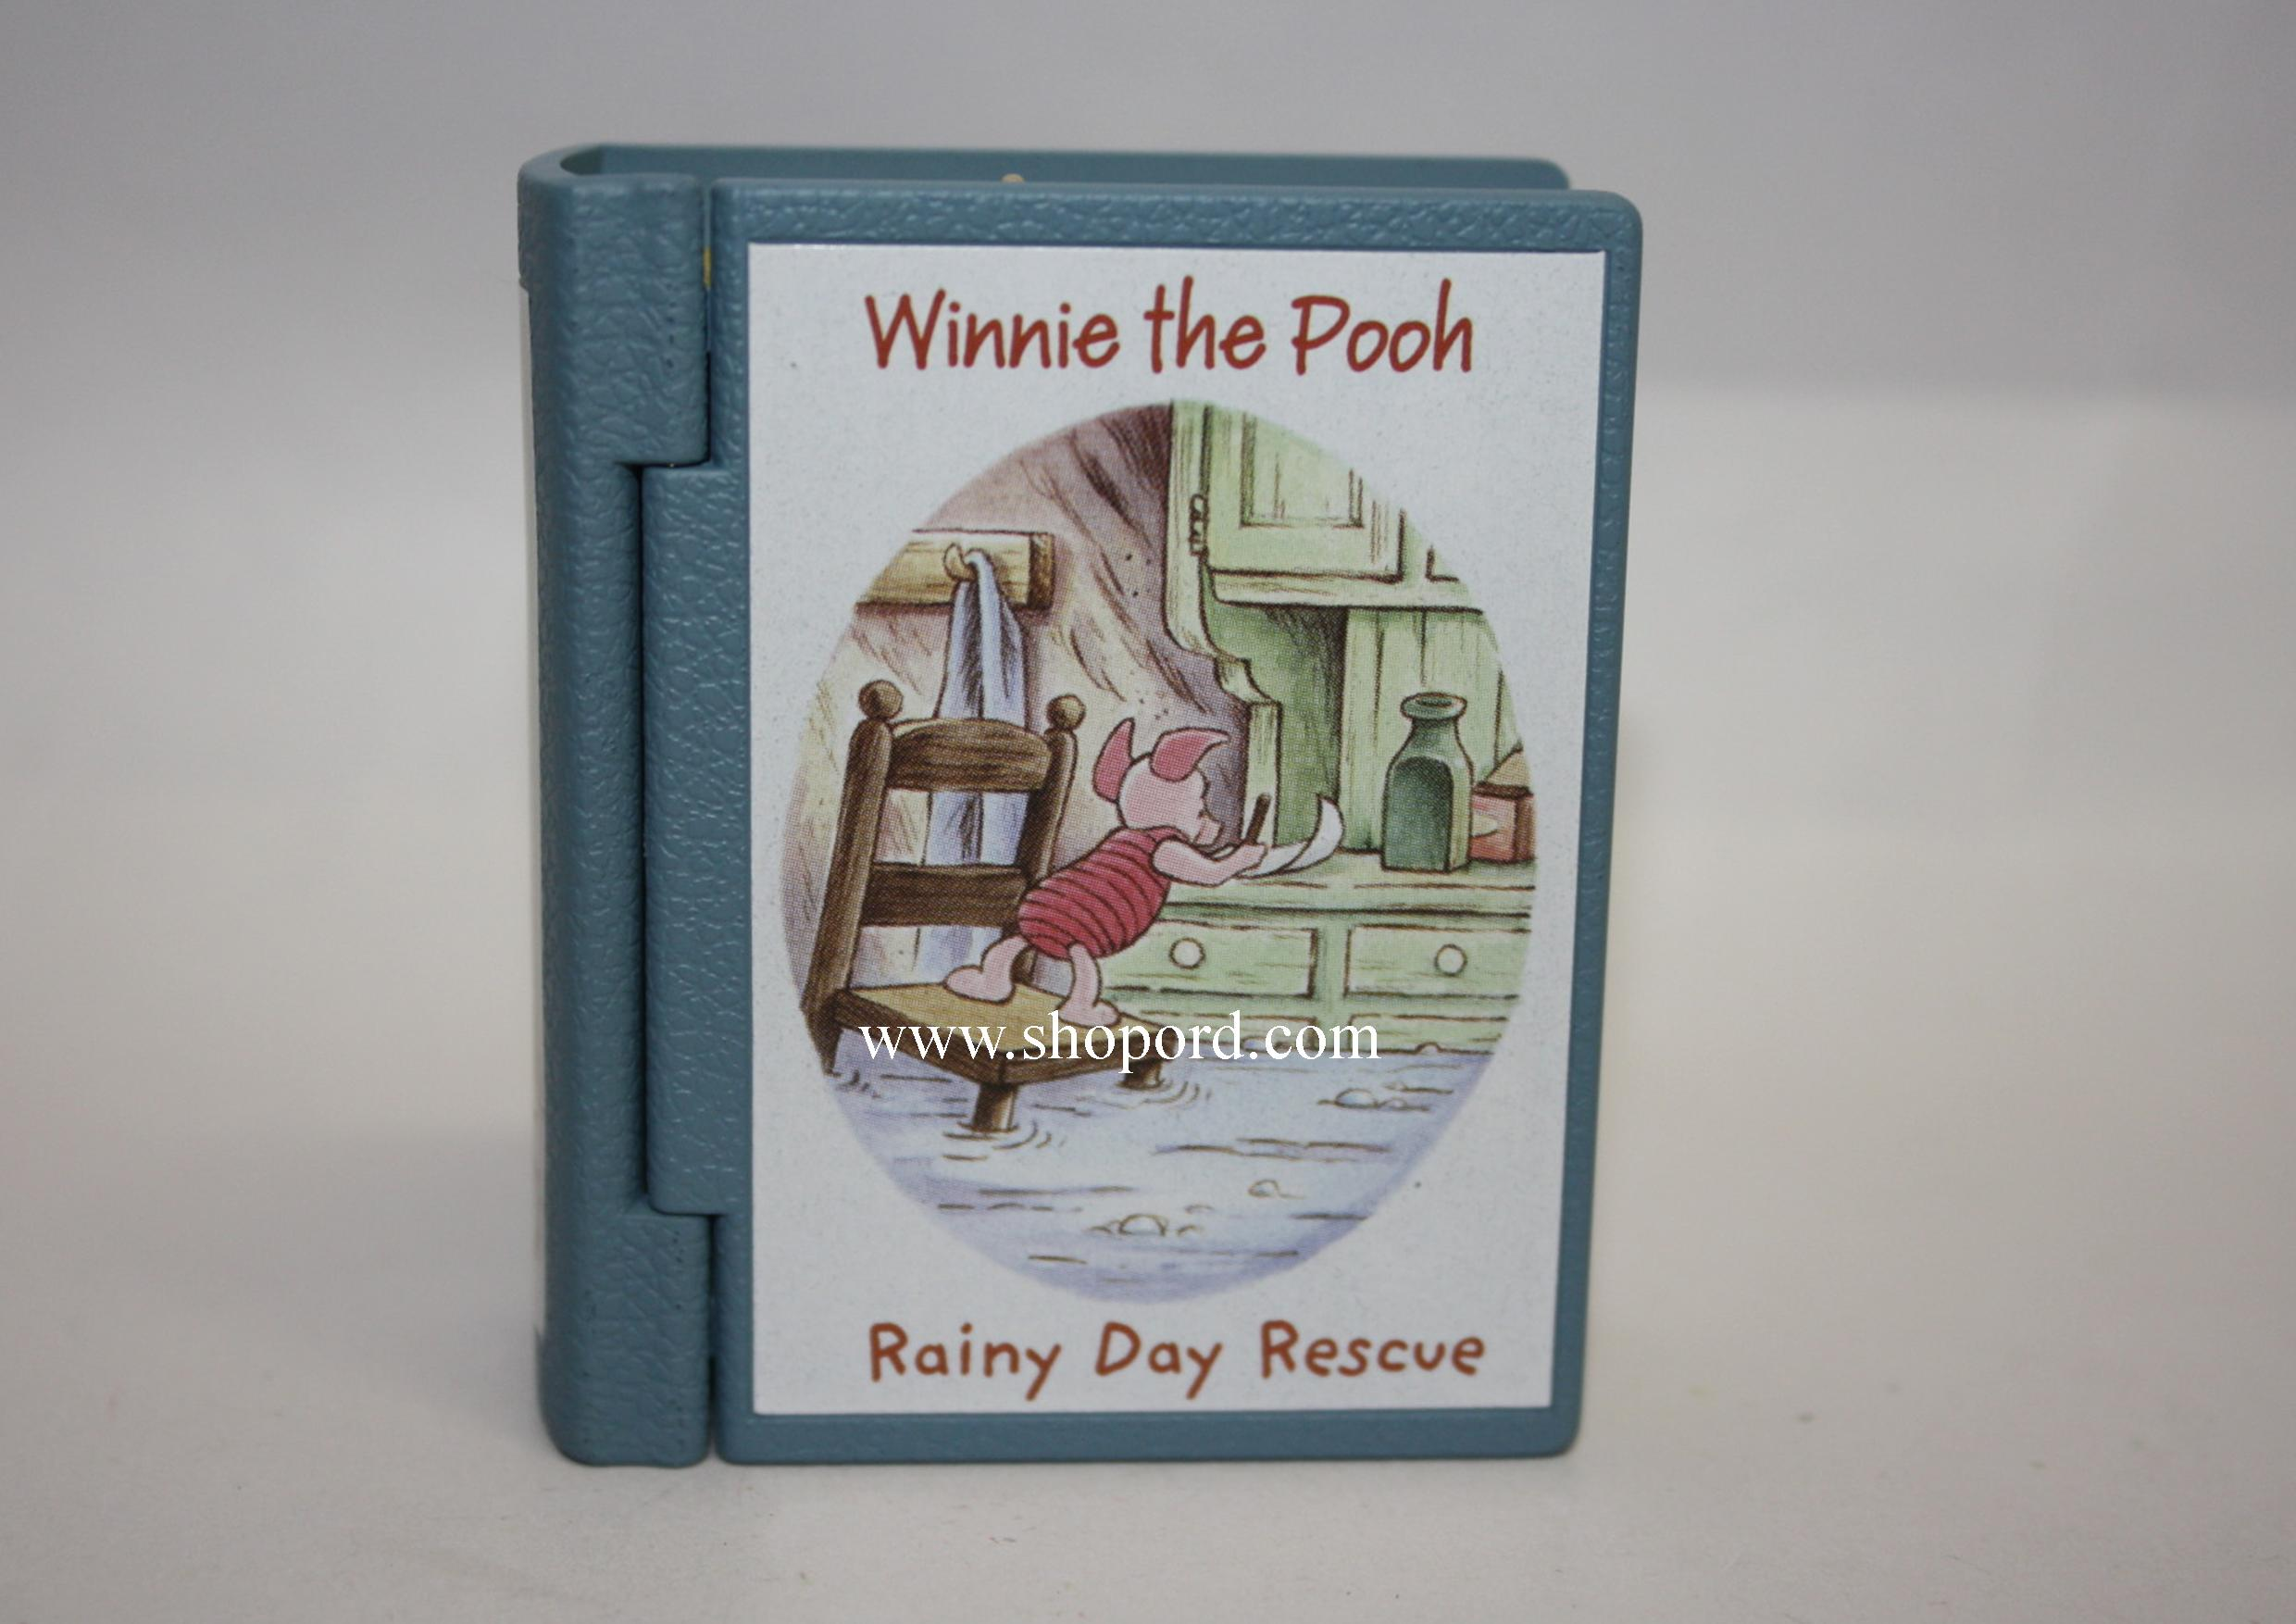 Hallmark 2005 Rainy Day Rescue Ornament 8th in the Winnie The Pooh series QXD4102